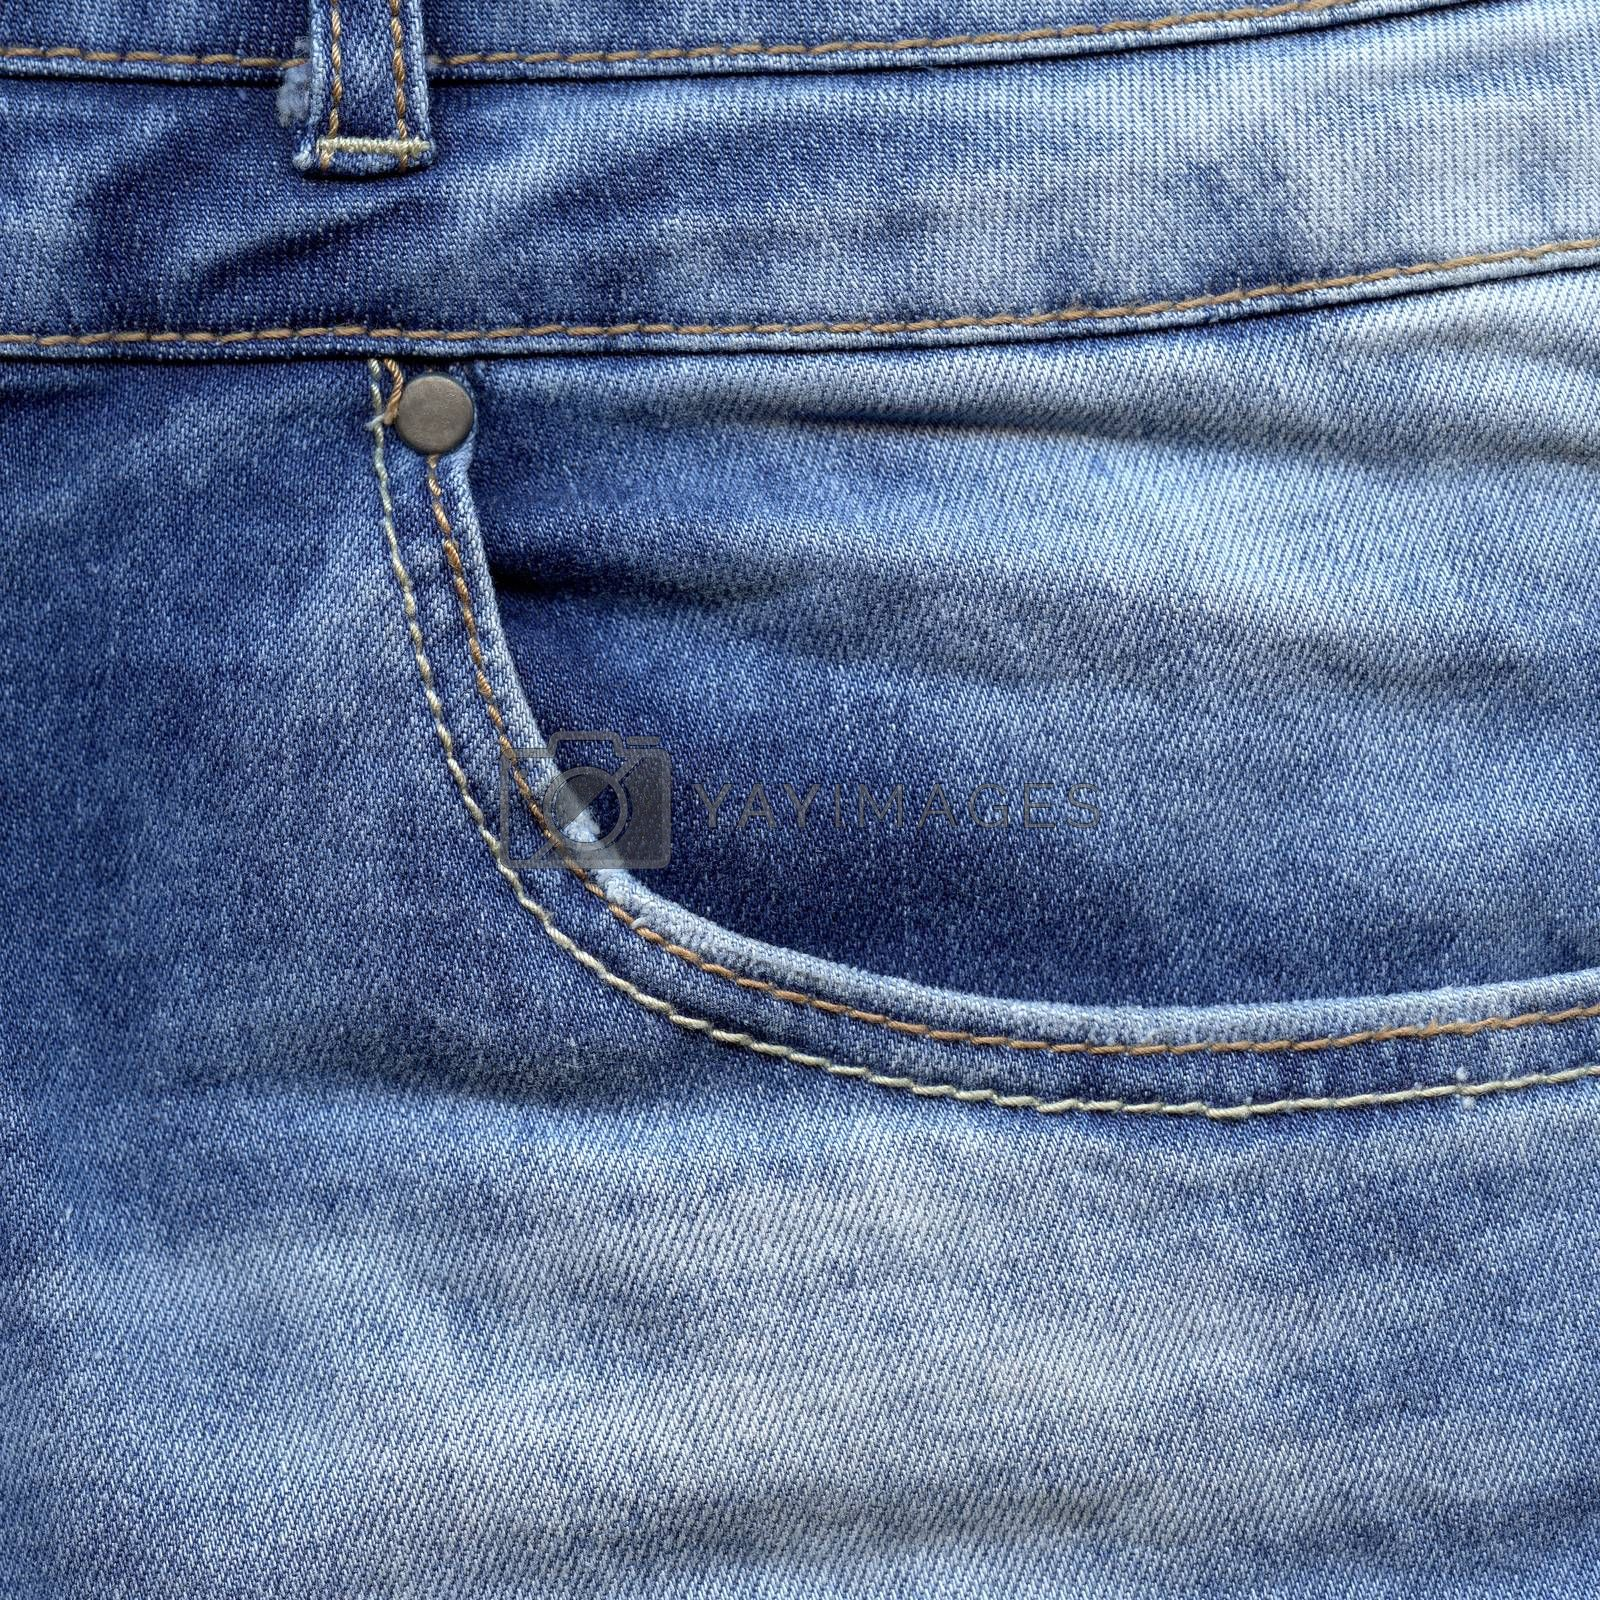 Jeans pocket. Blue denim texture. Vintage background